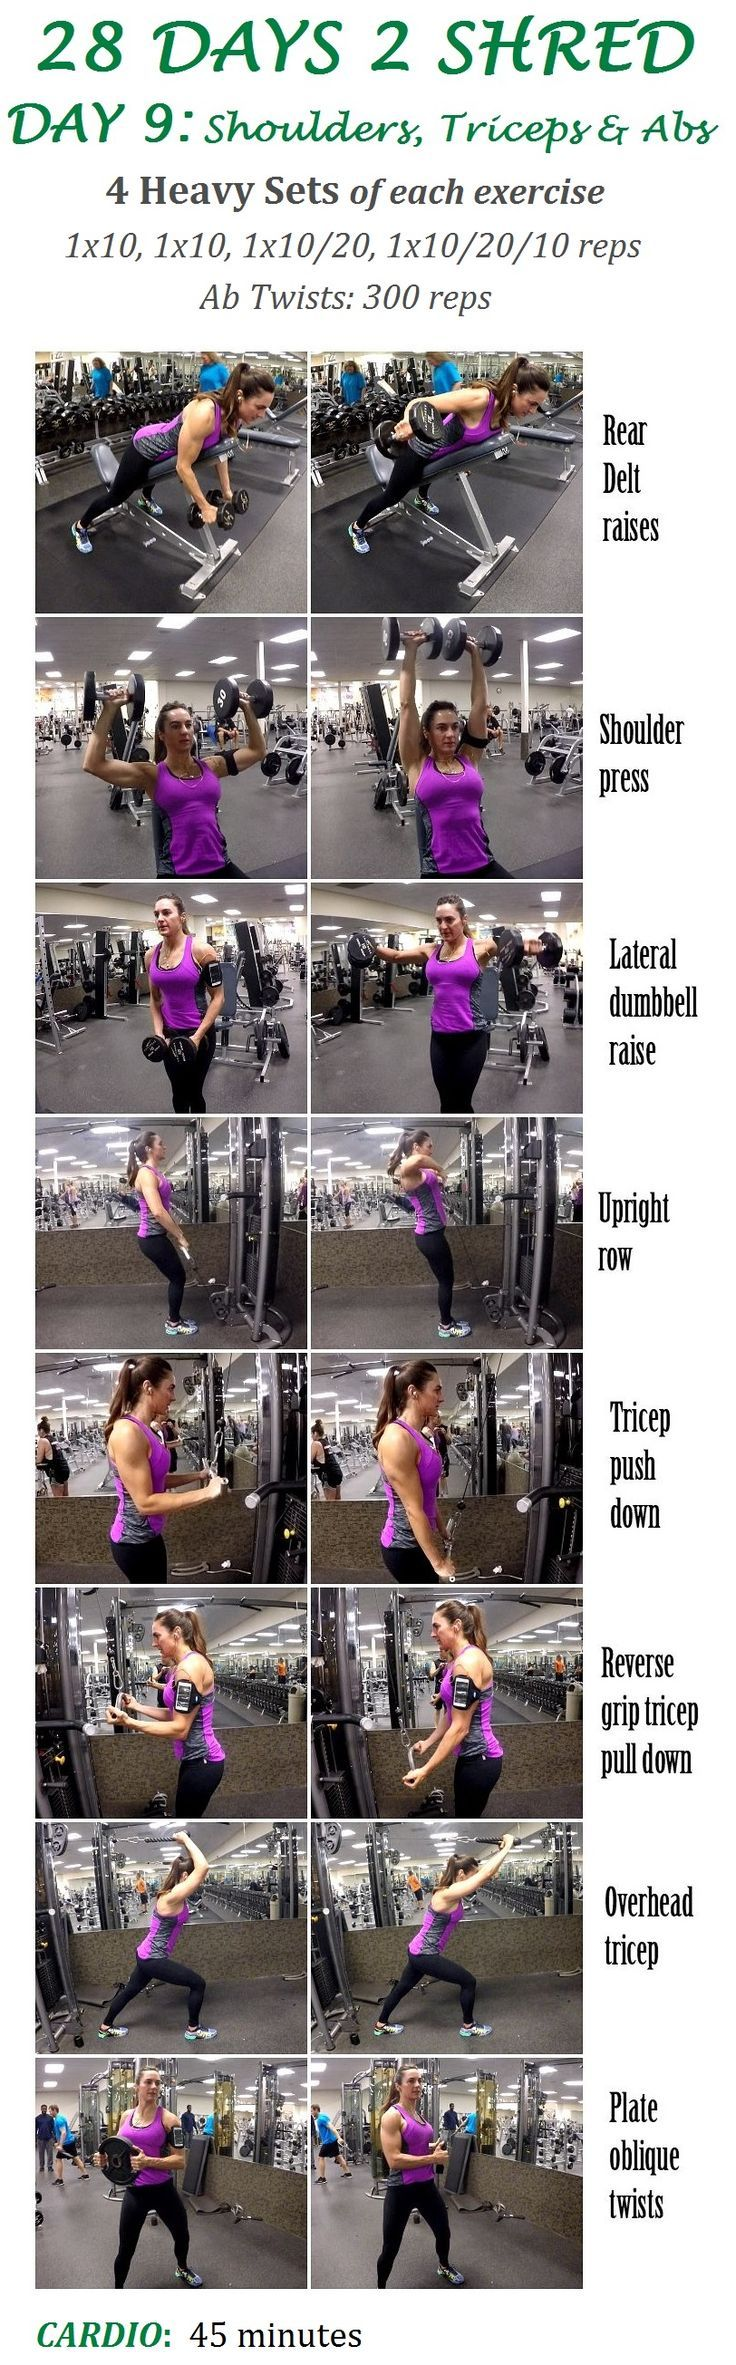 Shoulders, Triceps, and Abs Workout | Posted by: NewHowtoLoseBellyFat.com